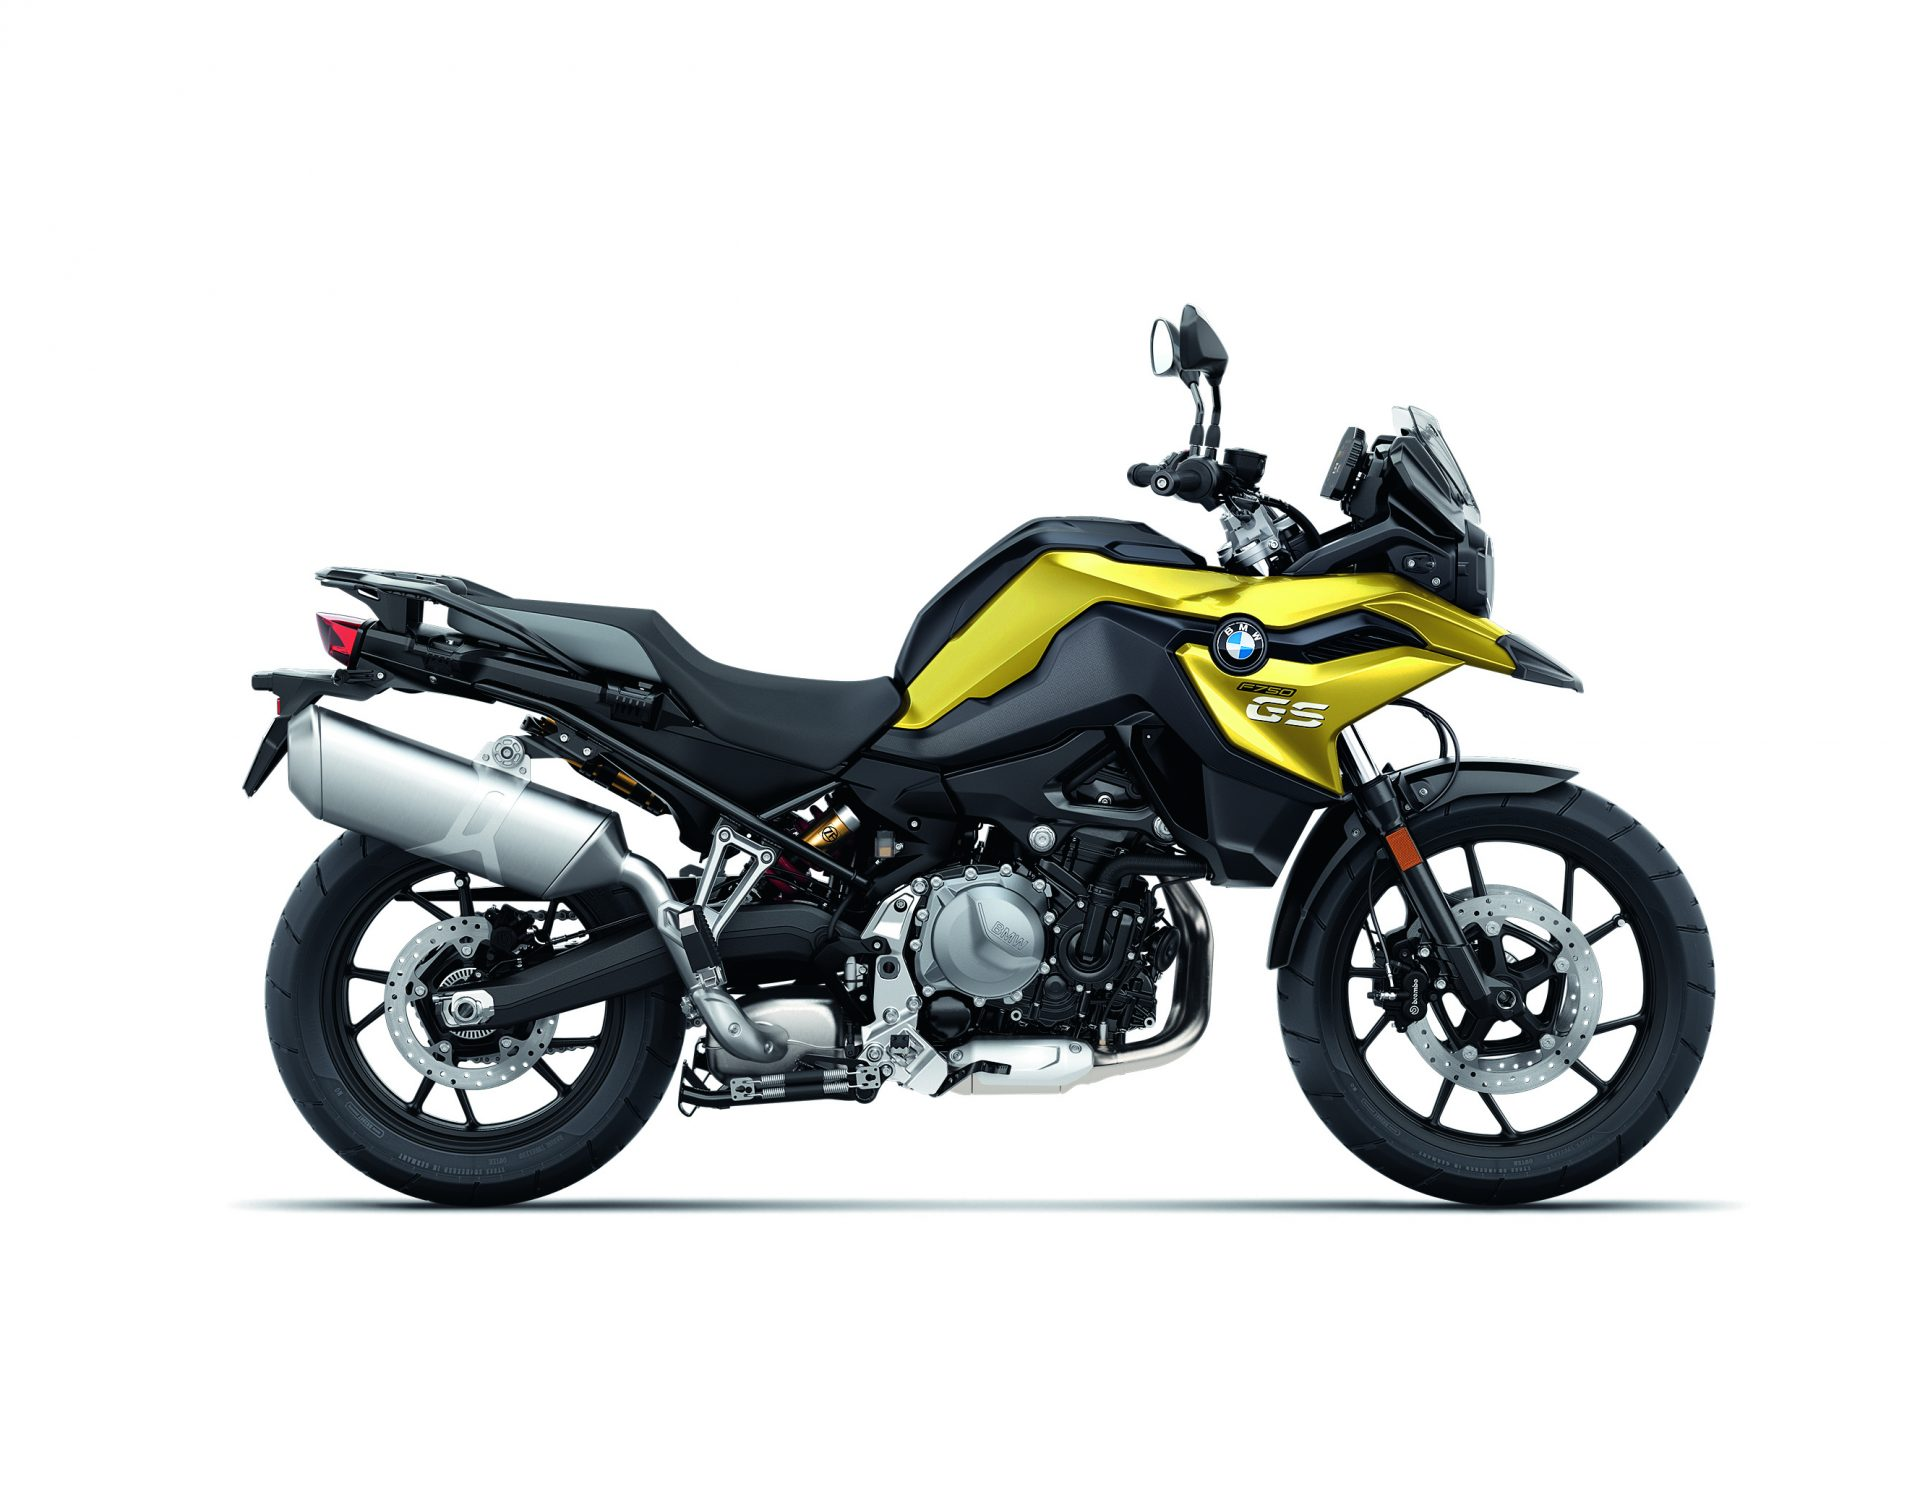 bmw f 750 gs 2019 adventure bmw moottoripy r t euro. Black Bedroom Furniture Sets. Home Design Ideas